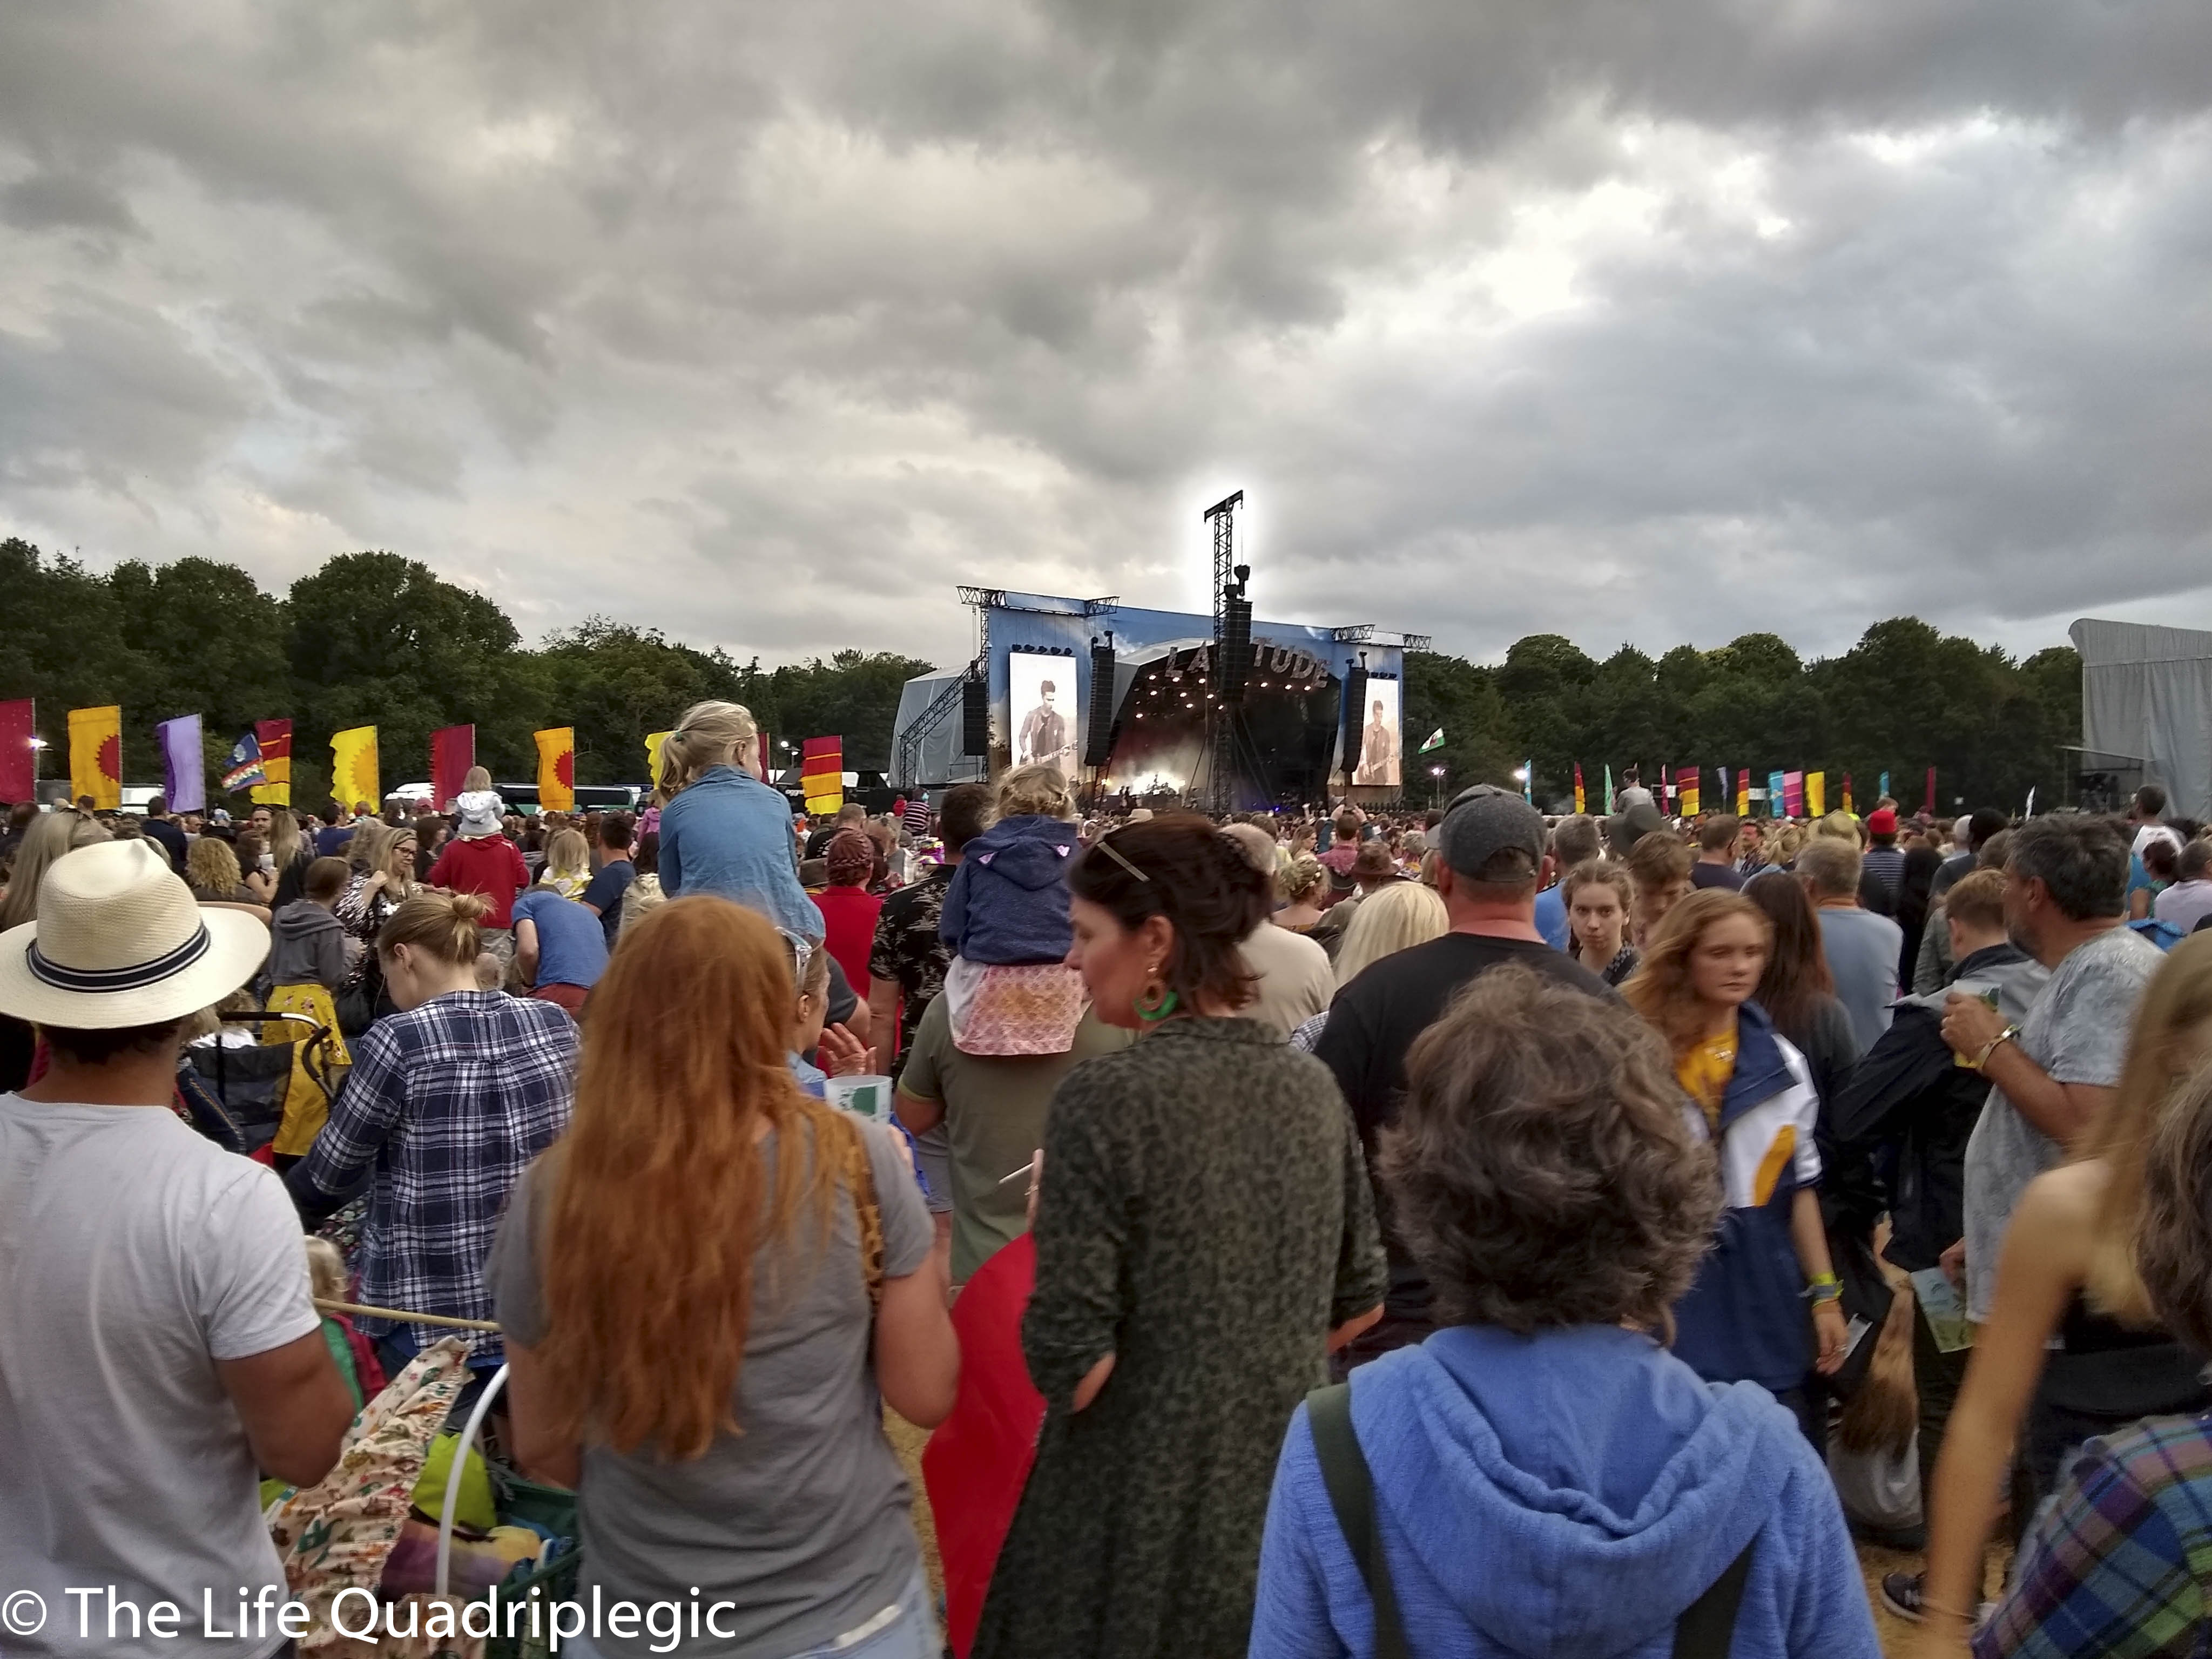 A large crowd is stood in the foreground looking towards a stage in the background under a cloudy sky.